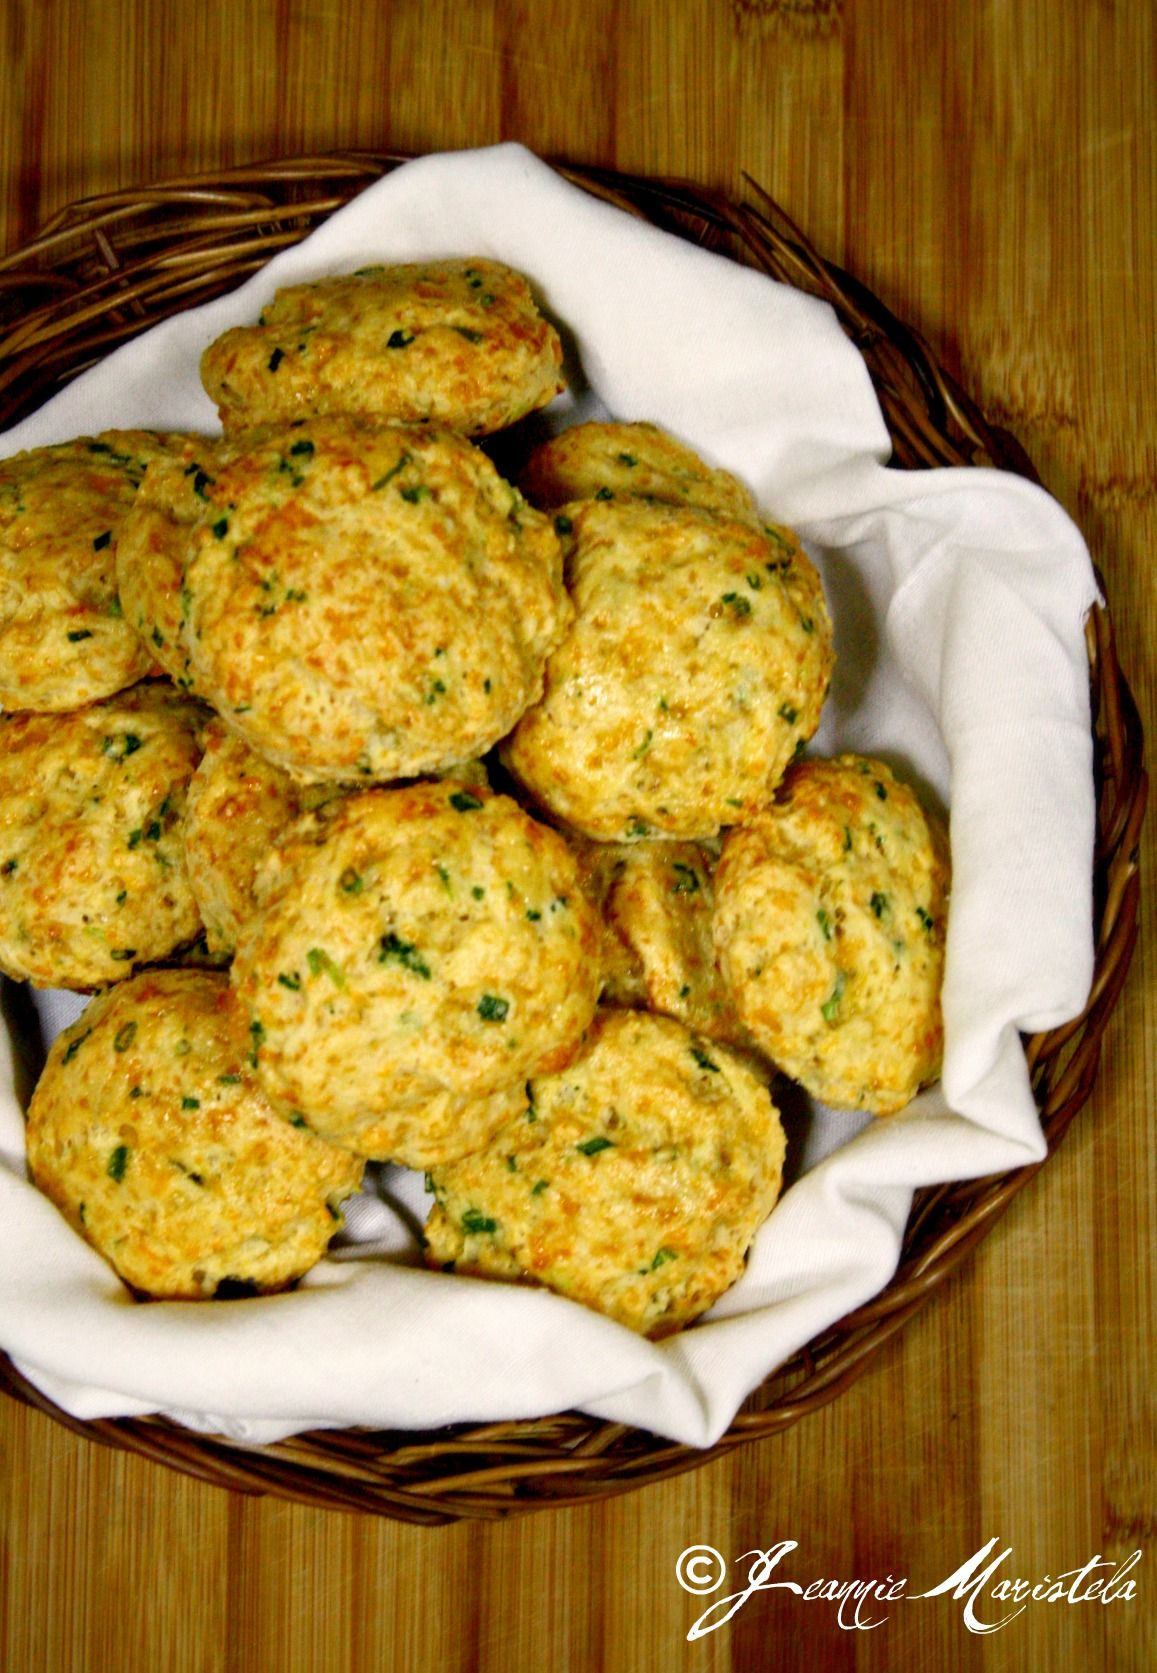 Cheddar and green onion biscuits soup biscuits hug